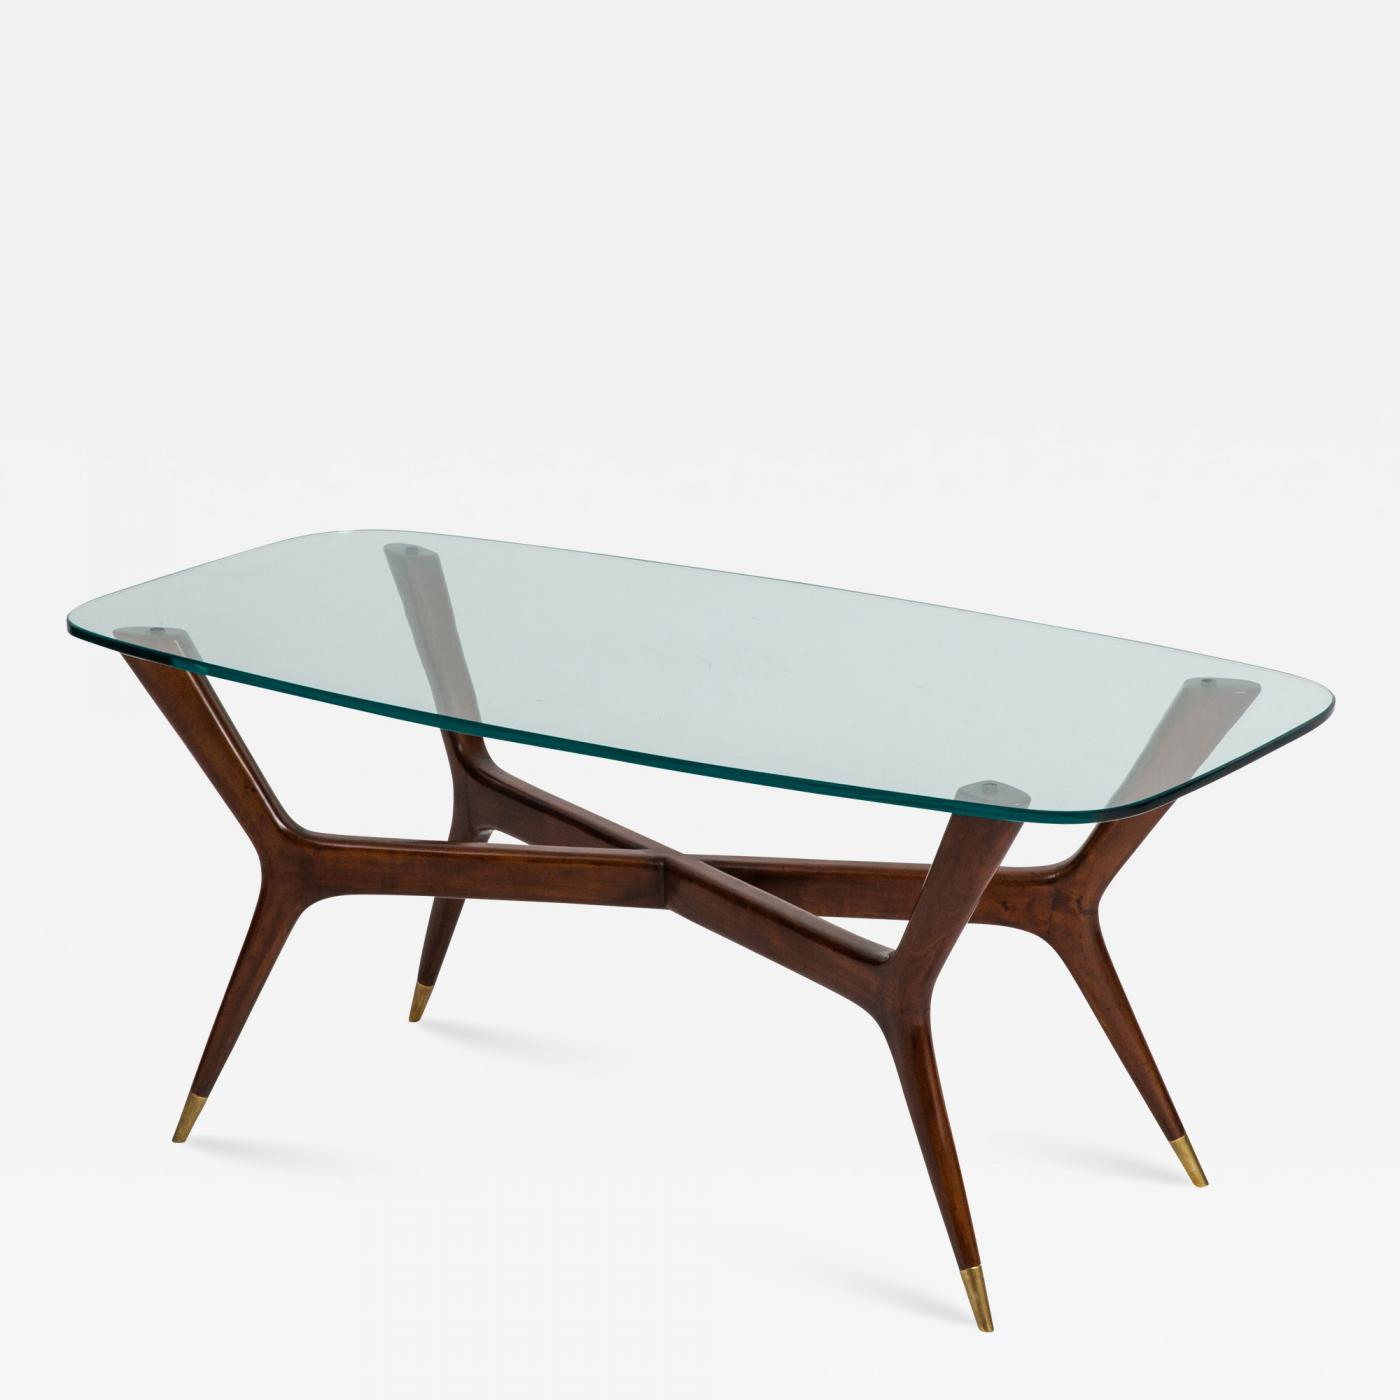 Italian Glass Coffee Table.Gio Ponti Coffee Table By Gio Ponti